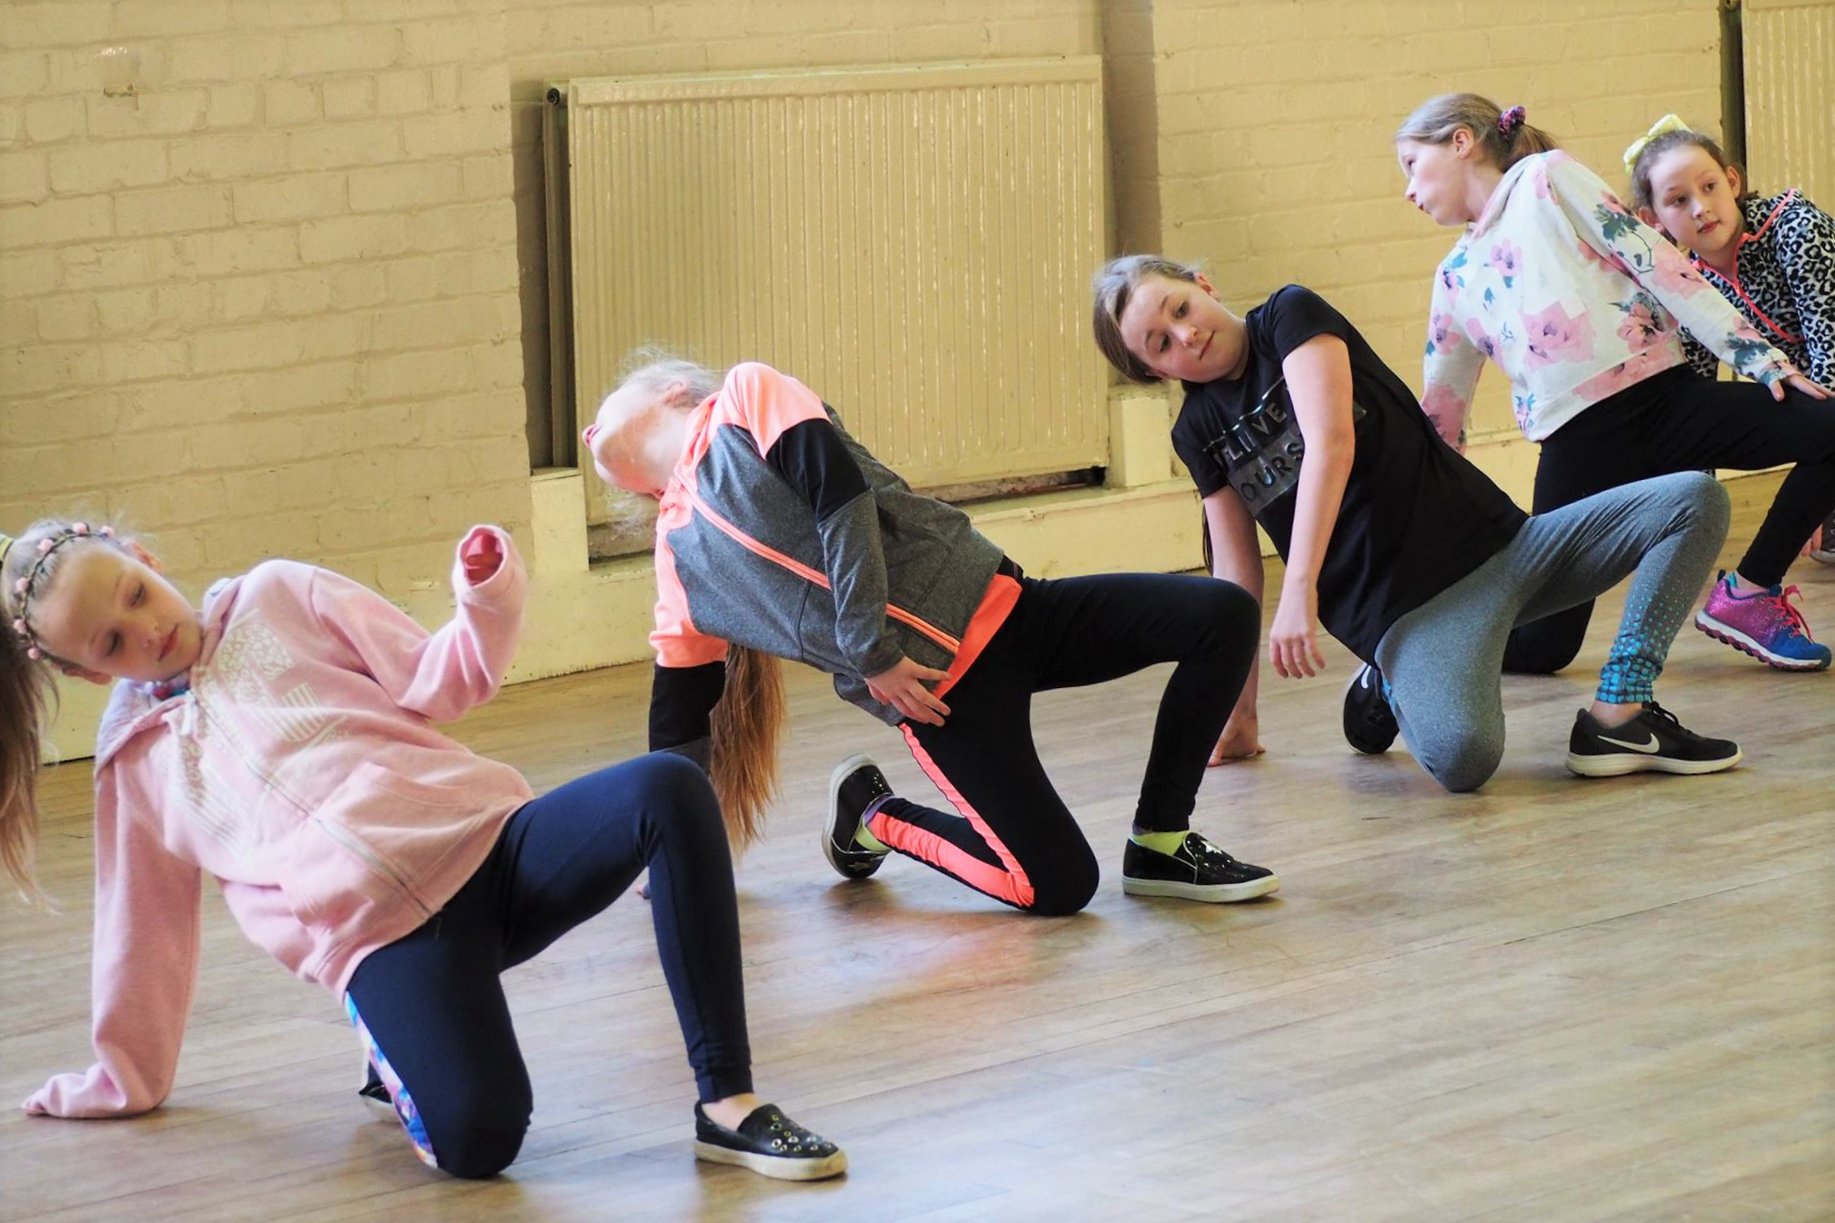 Street Dance classes for kids of all ages at SK Dance Studio, Wigan